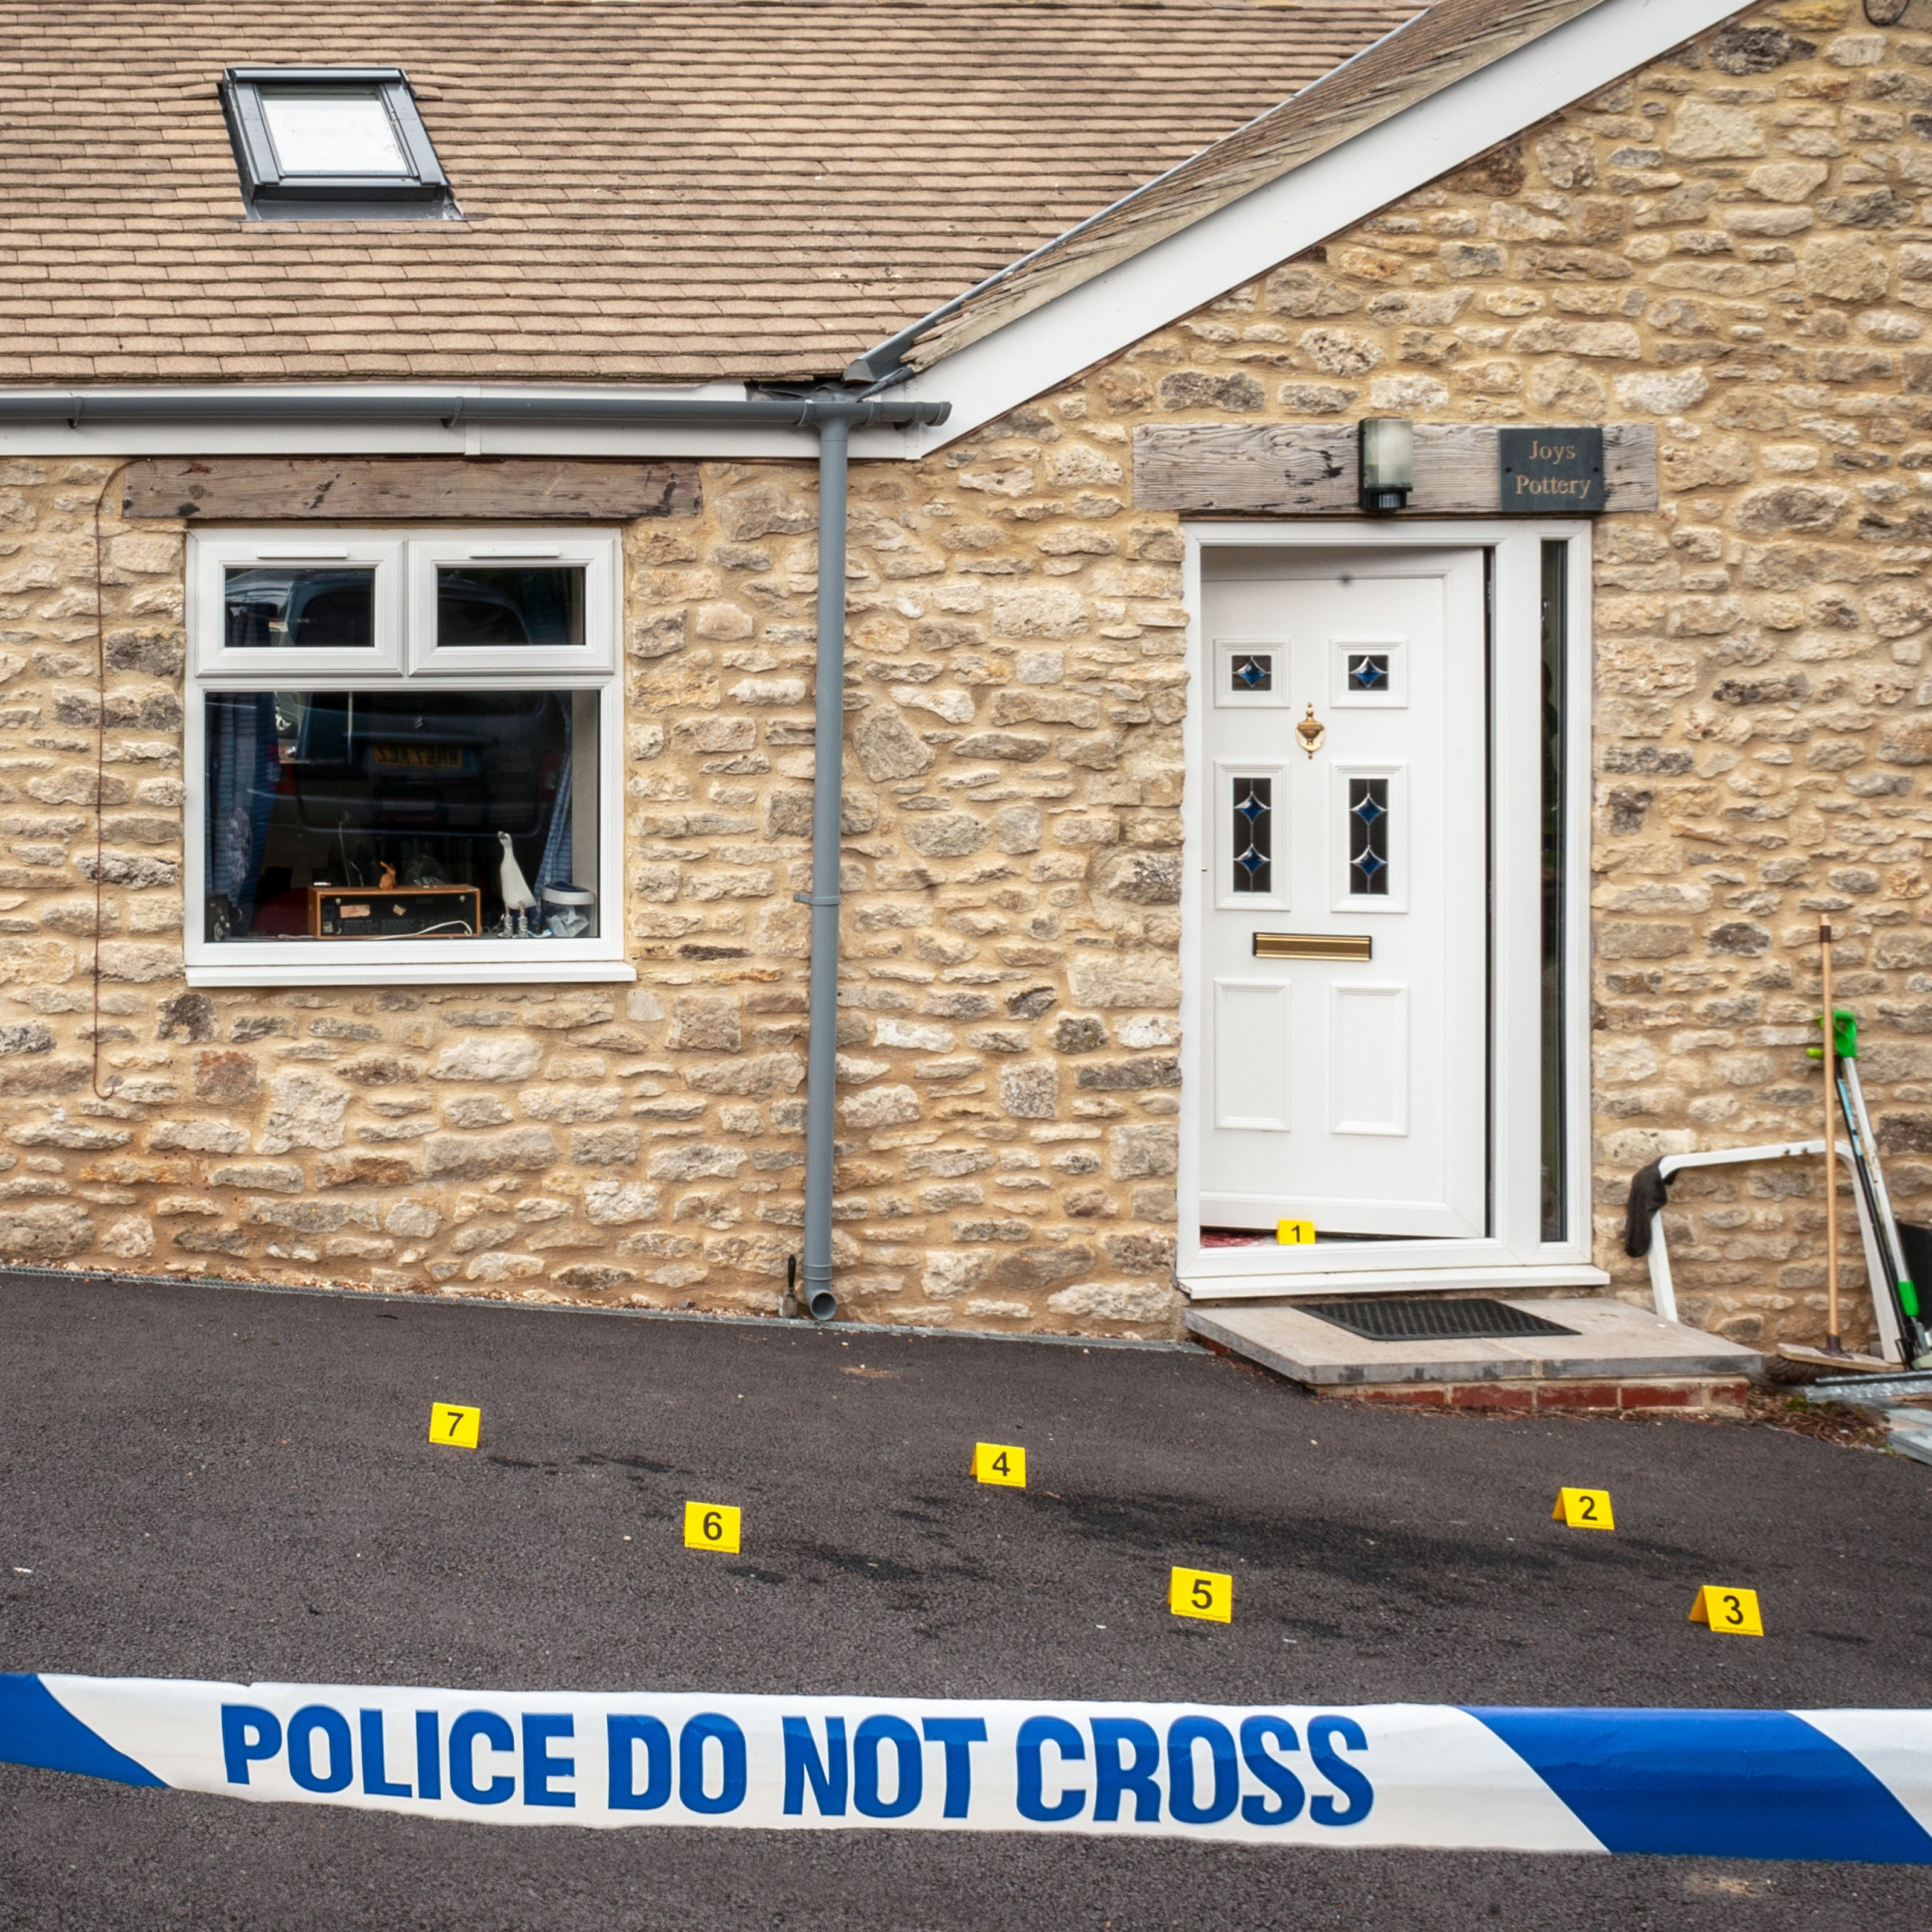 Photograph of the front of a house with the front door slightly open and forensic crime scene numbered yellow markers on the ground. In the foreground is a police cordon with 'Police Do Not Cross' written across the tape.